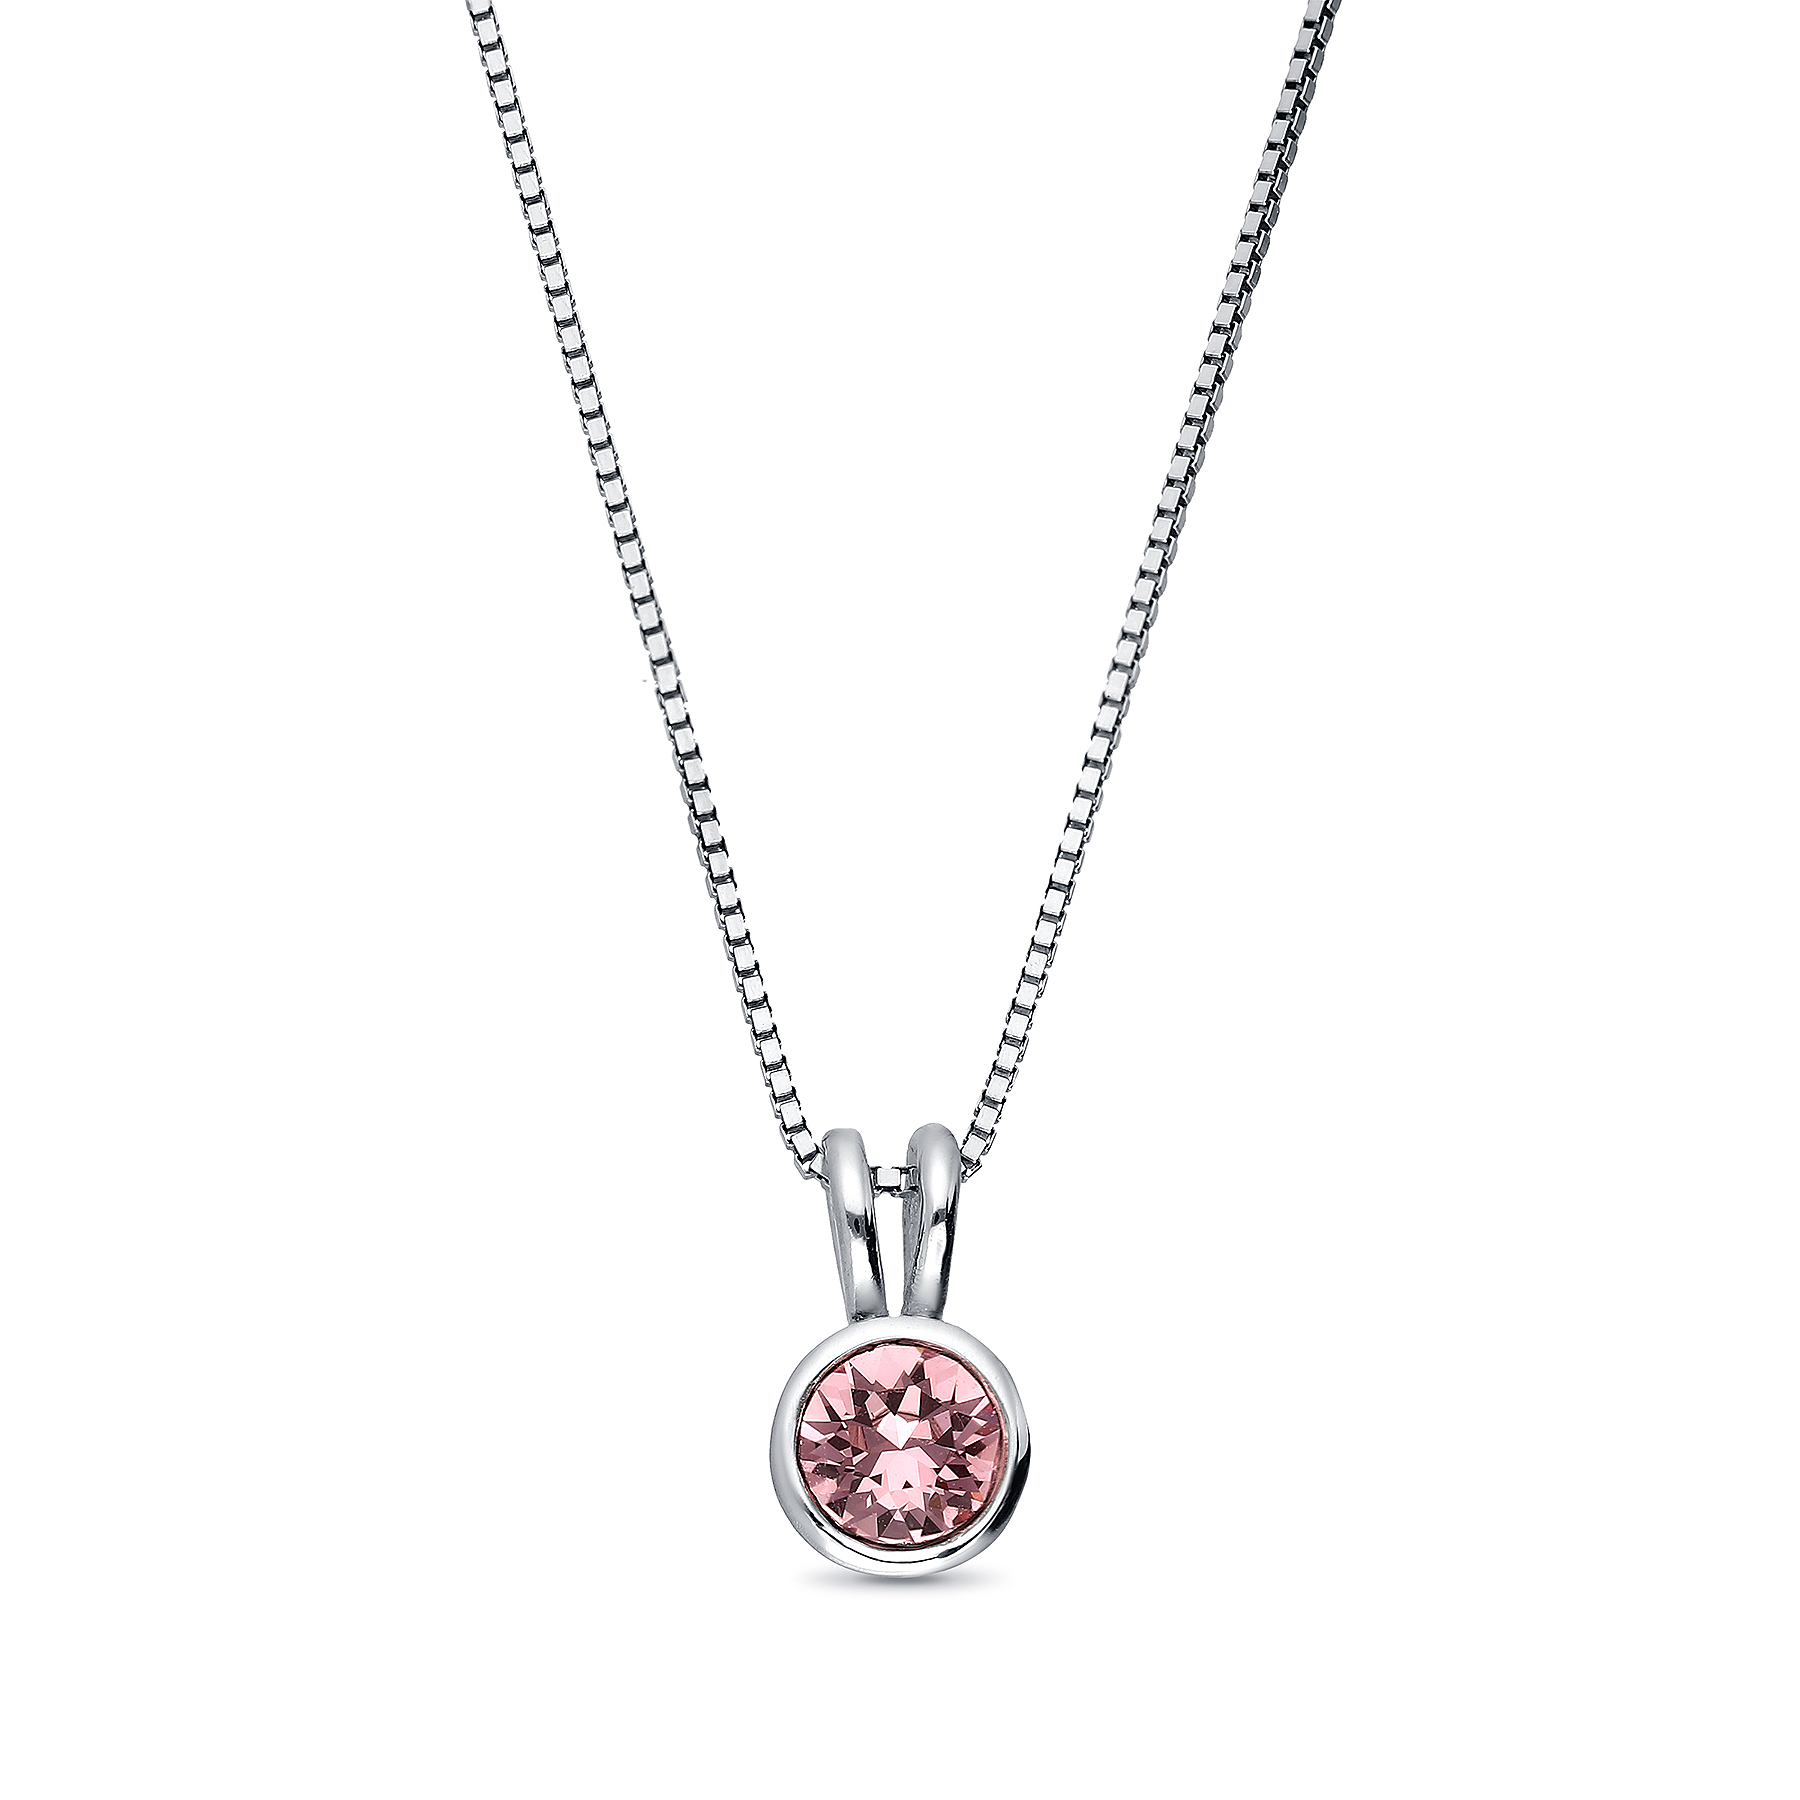 1583-180 - Sparkle by 7K - 925 Sterling Silver Necklace Decorated With Verifiable Authentic Swarovski Crystal